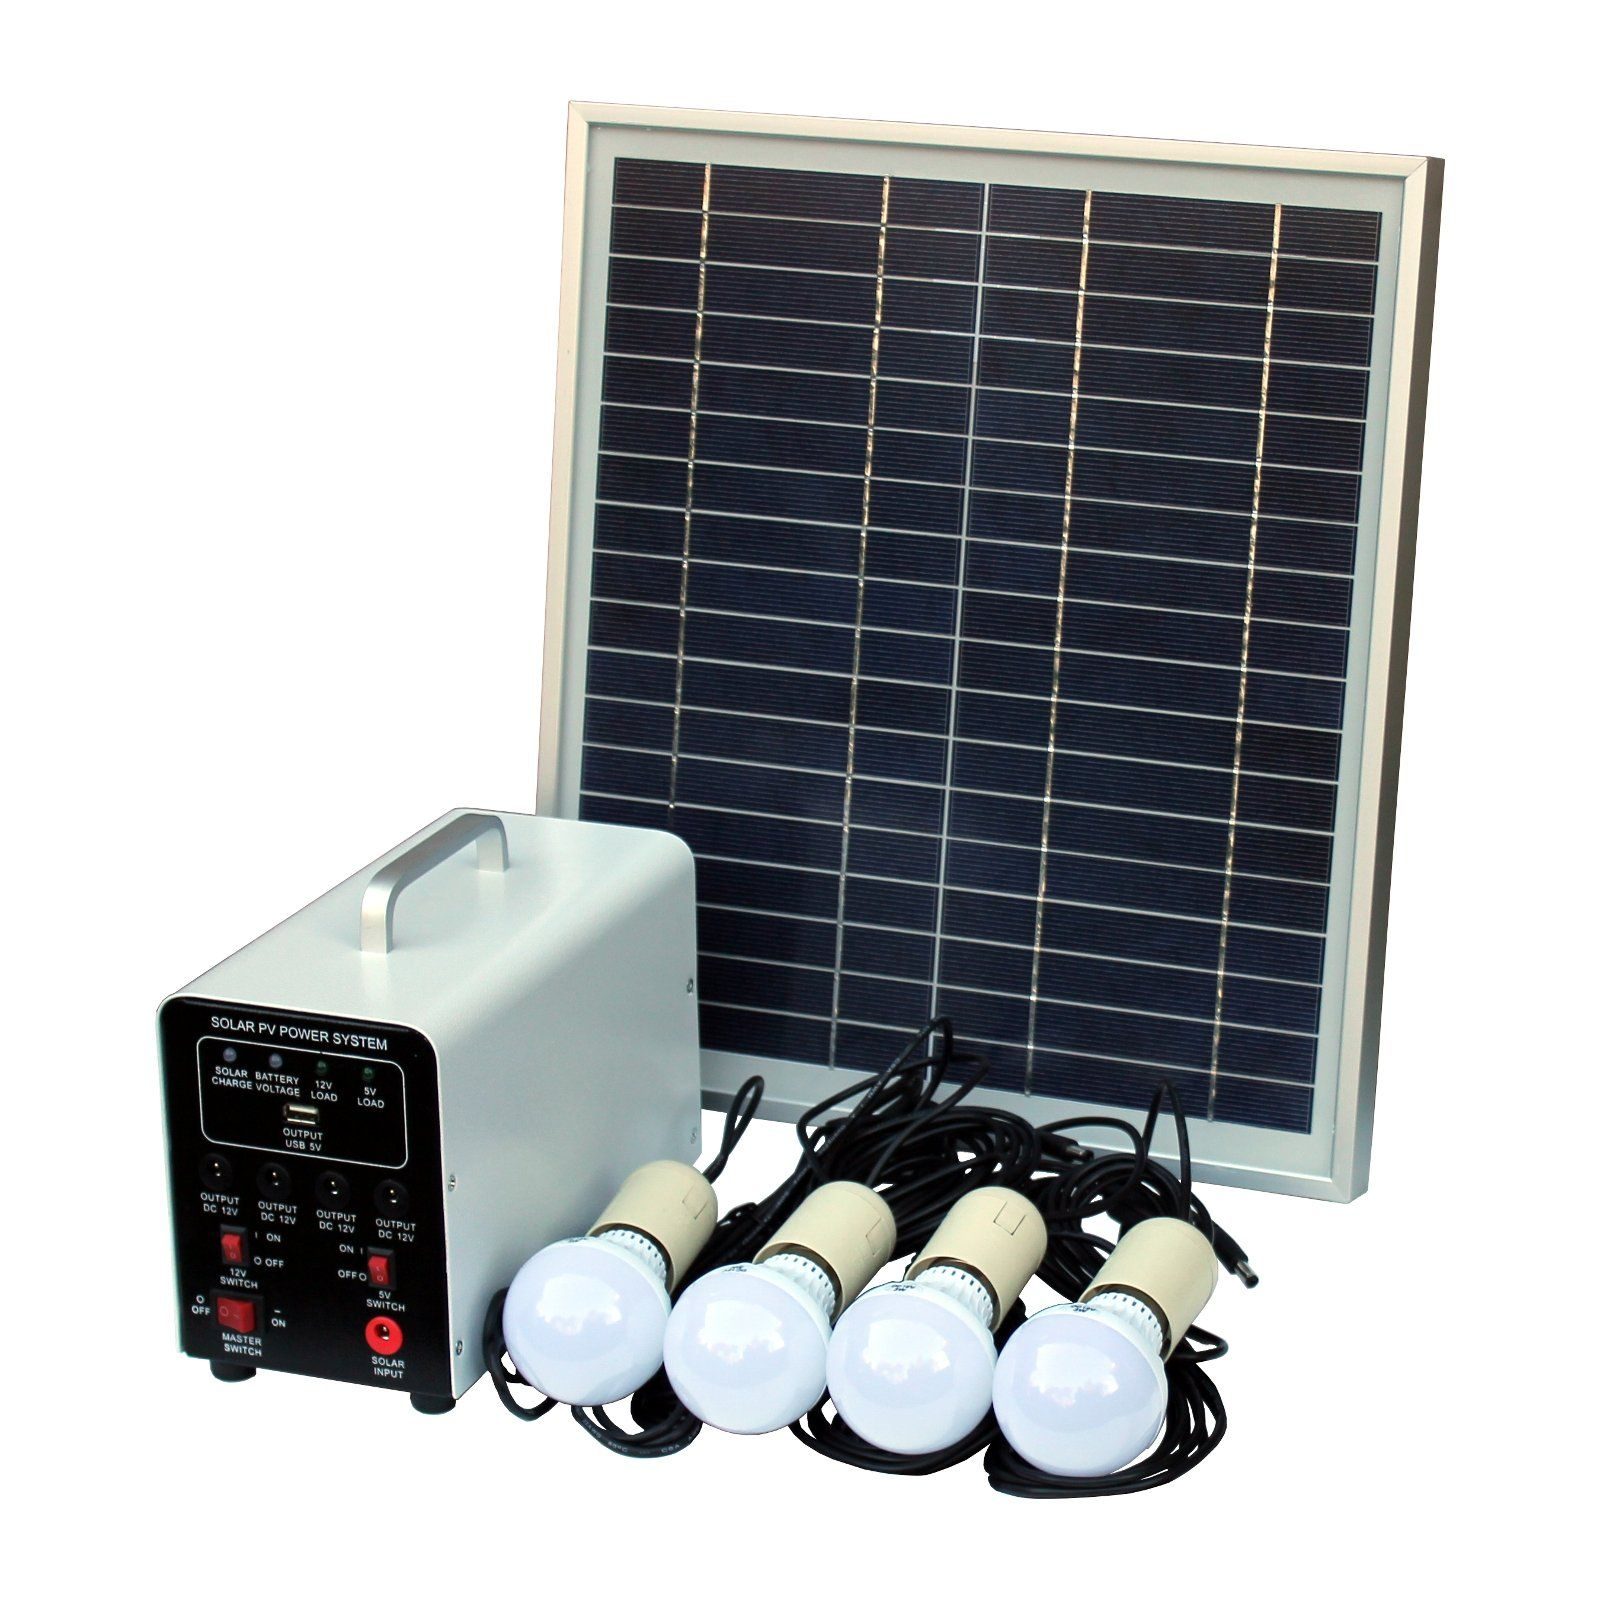 15w Off Grid Solar Lighting System With 4 Led Lights Solar Panel Battery And Cables Complete Solar Lighti Solar Lighting System Solar Panels Off Grid Solar